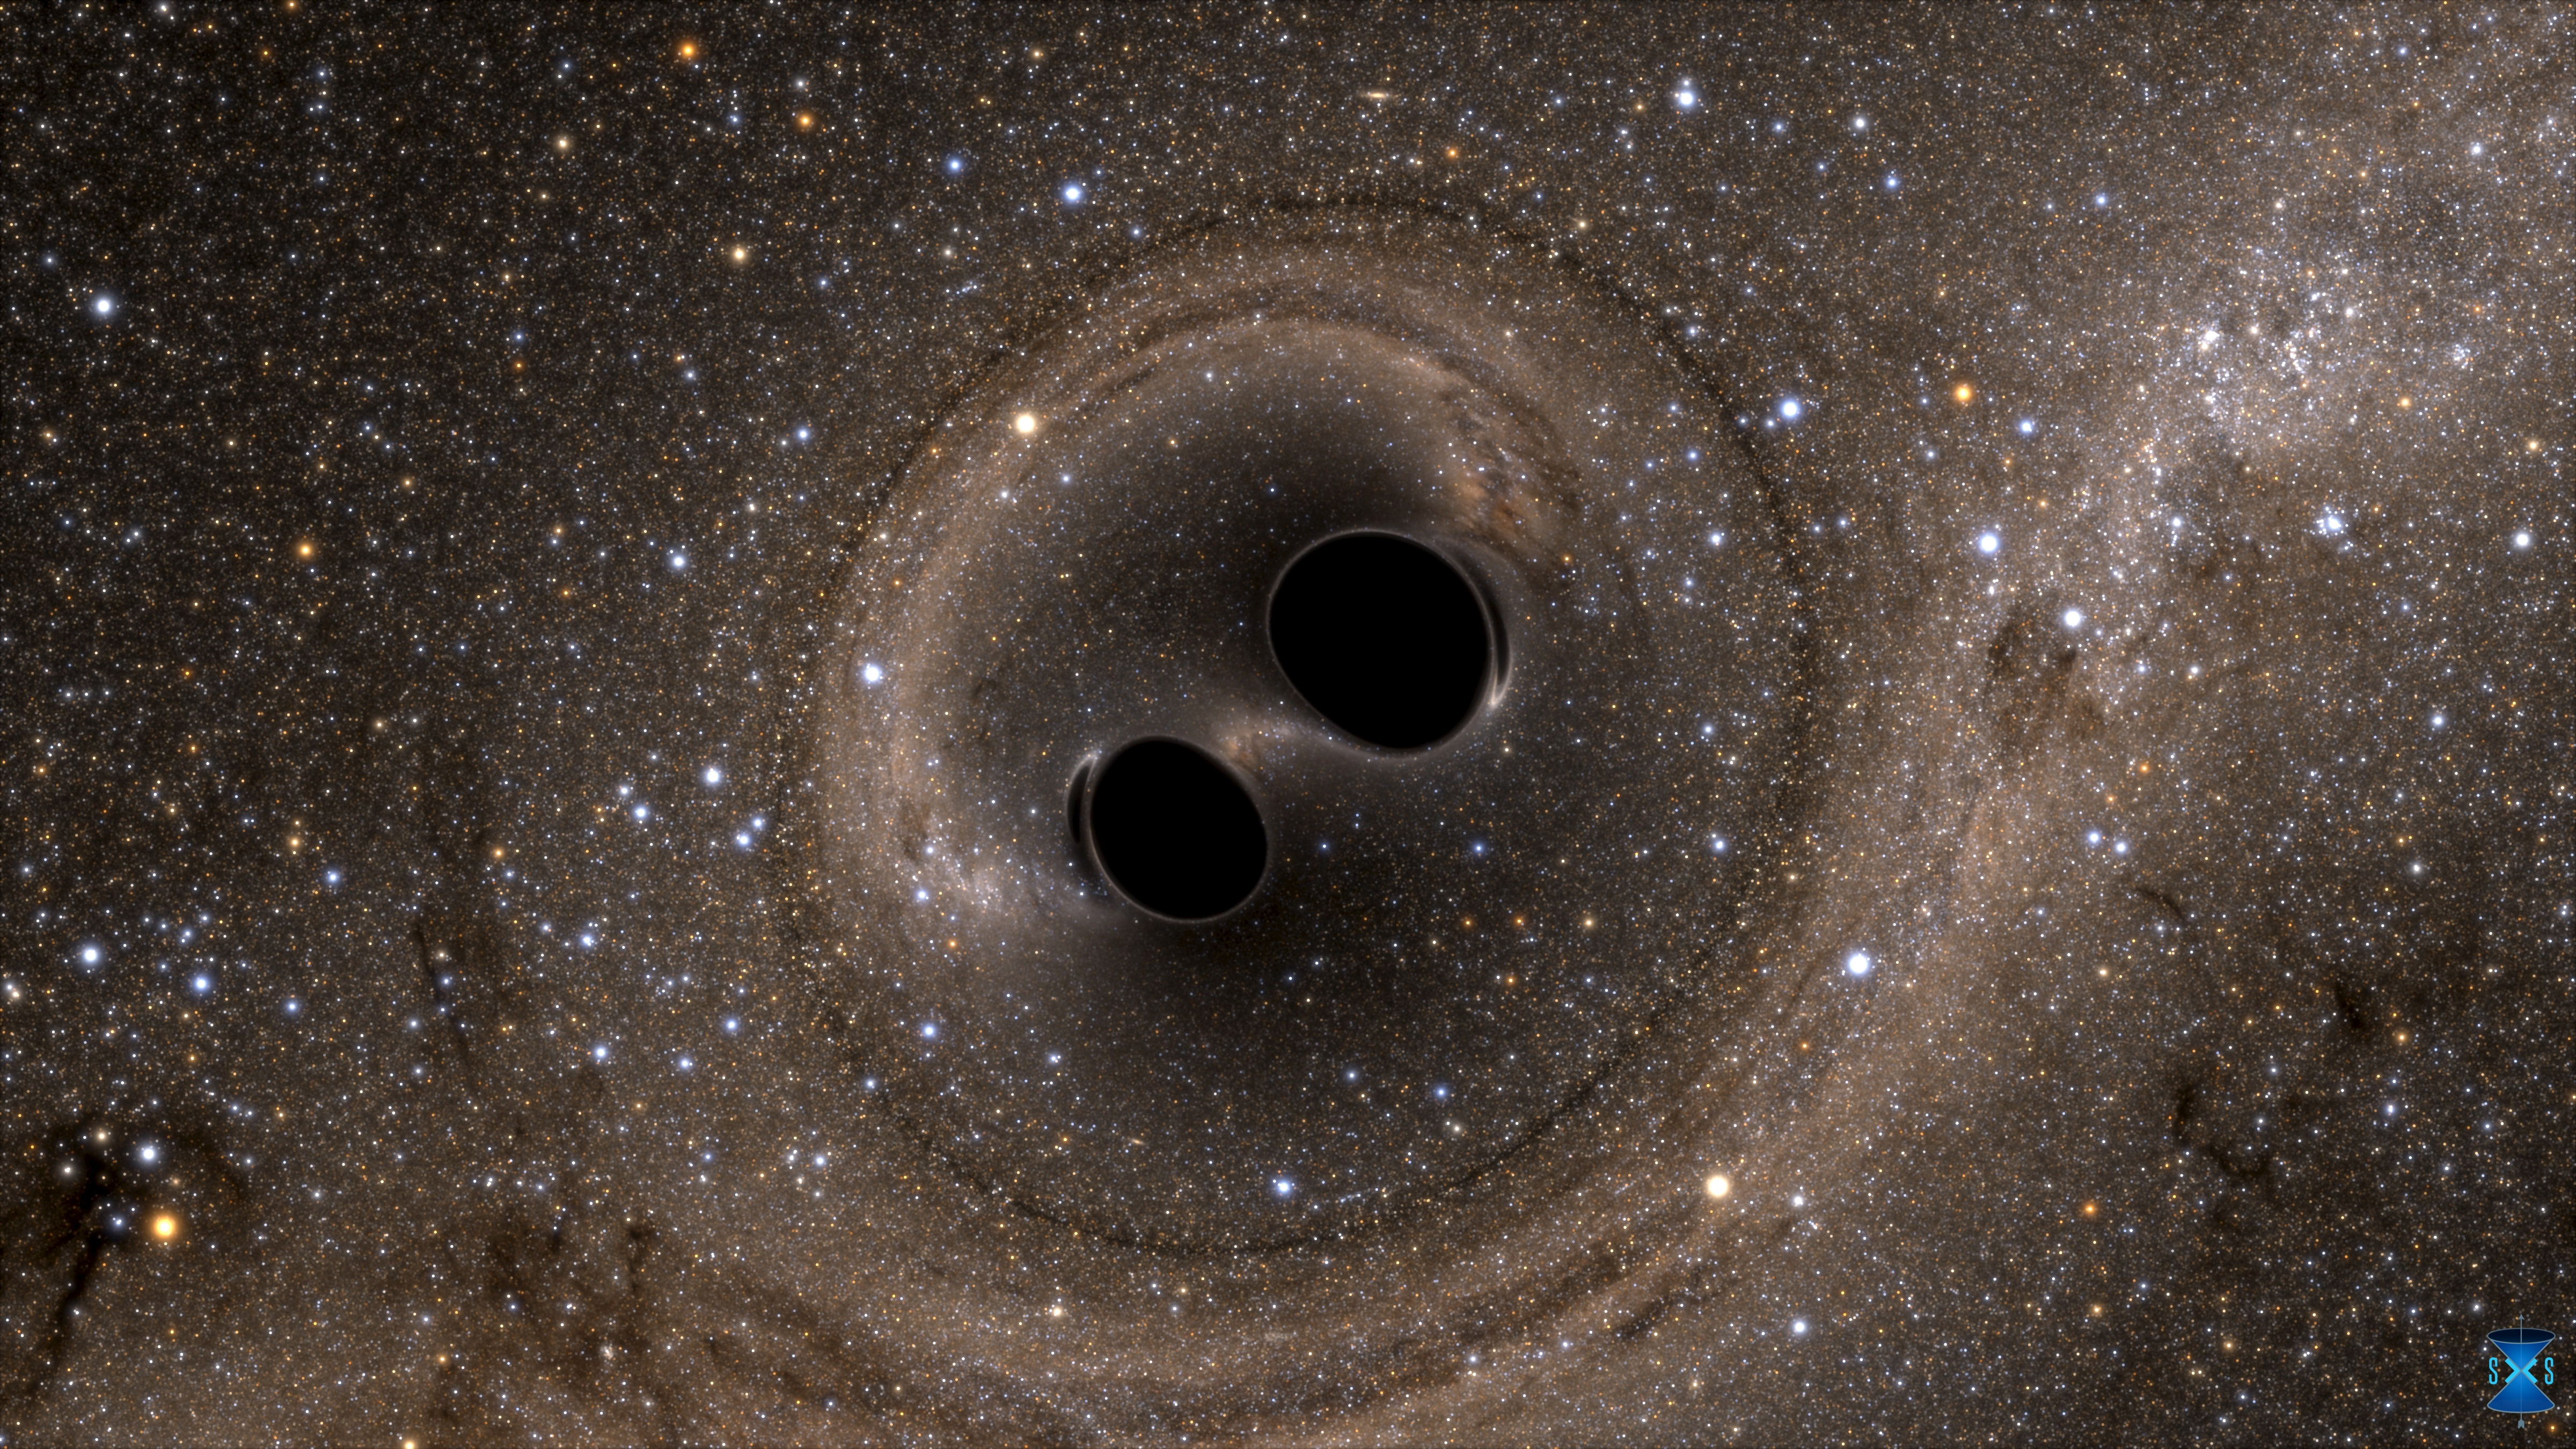 The collision of two black holes  - a tremendously powerful event detected for the first time ever by the Laser Interferometer Gravitational-Wave Observatory, or LIGO - is seen in this still image from a computer simulation released in Washington February 11, 2016. Scientists have for the first time detected gravitational waves, ripples in space and time hypothesized by Albert Einstein a century ago, in a landmark discovery announced on Thursday that opens a new window for studying the cosmos.